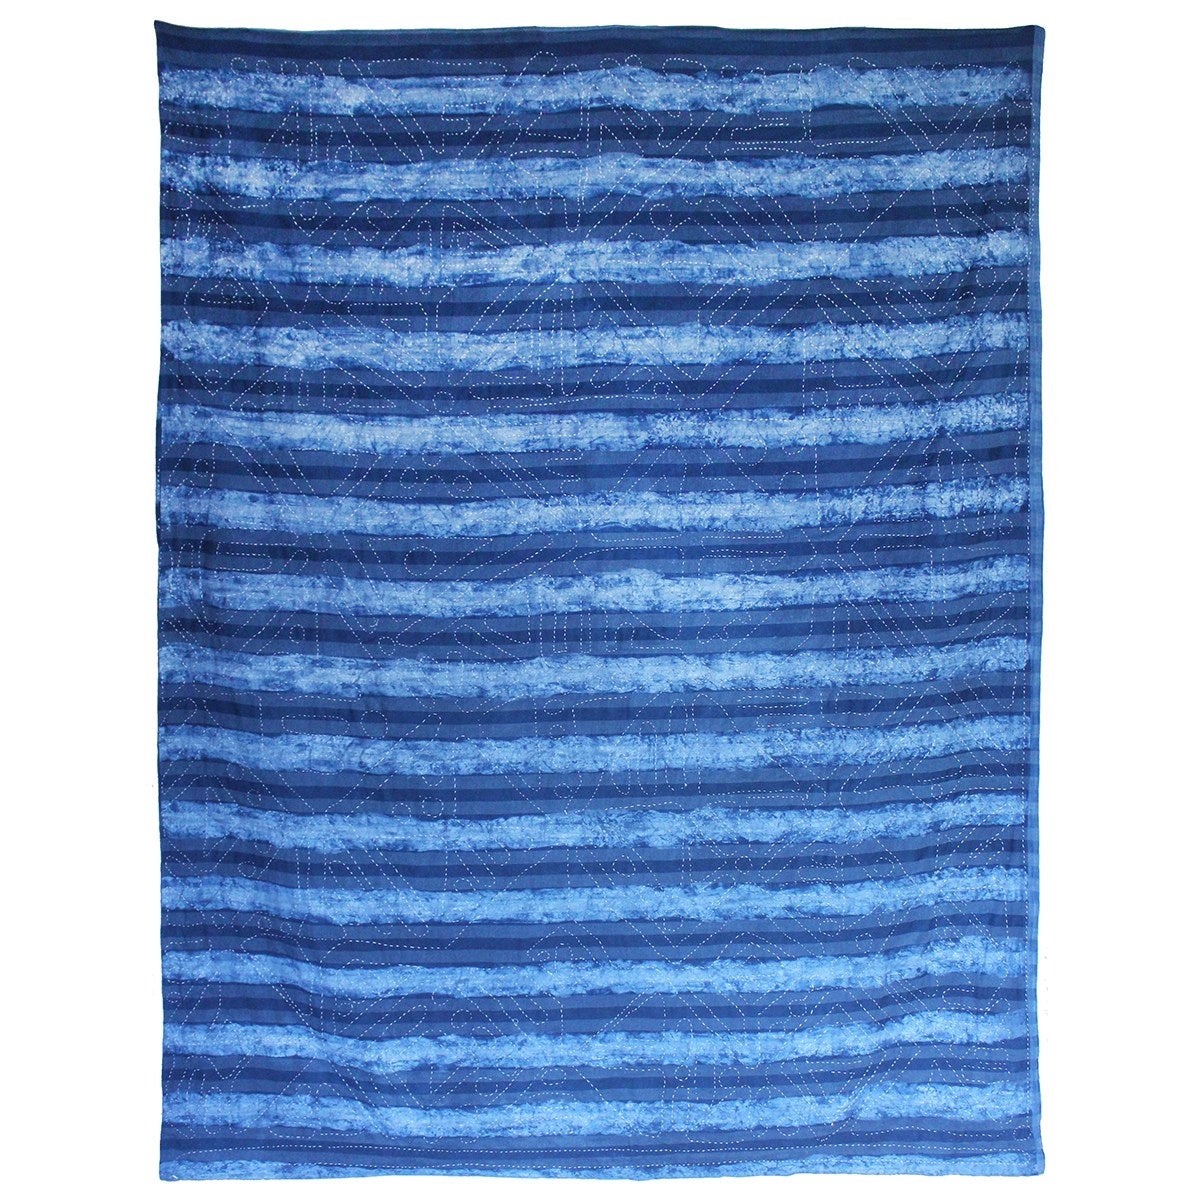 Striped reverse of indigo dyed quilt